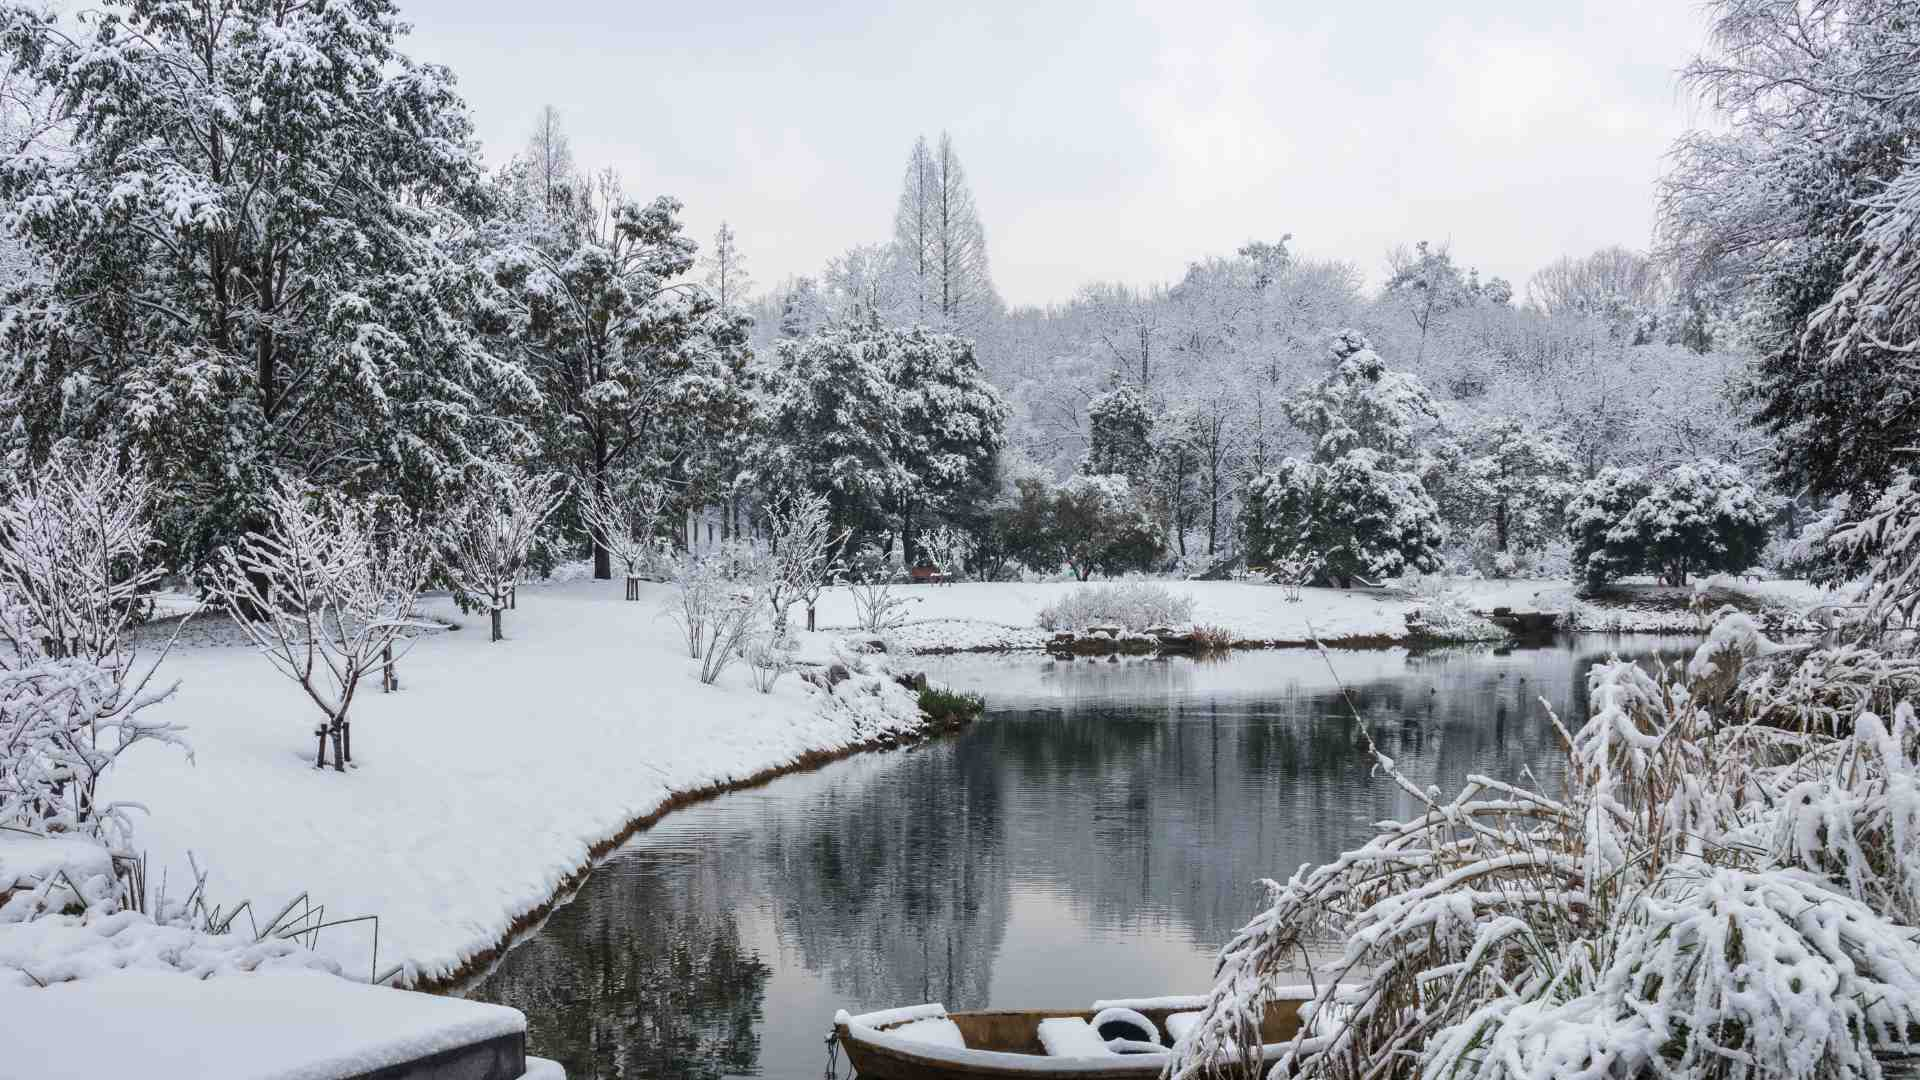 A snowy, winter landscape with snow-covered trees, a lake and a small boat.